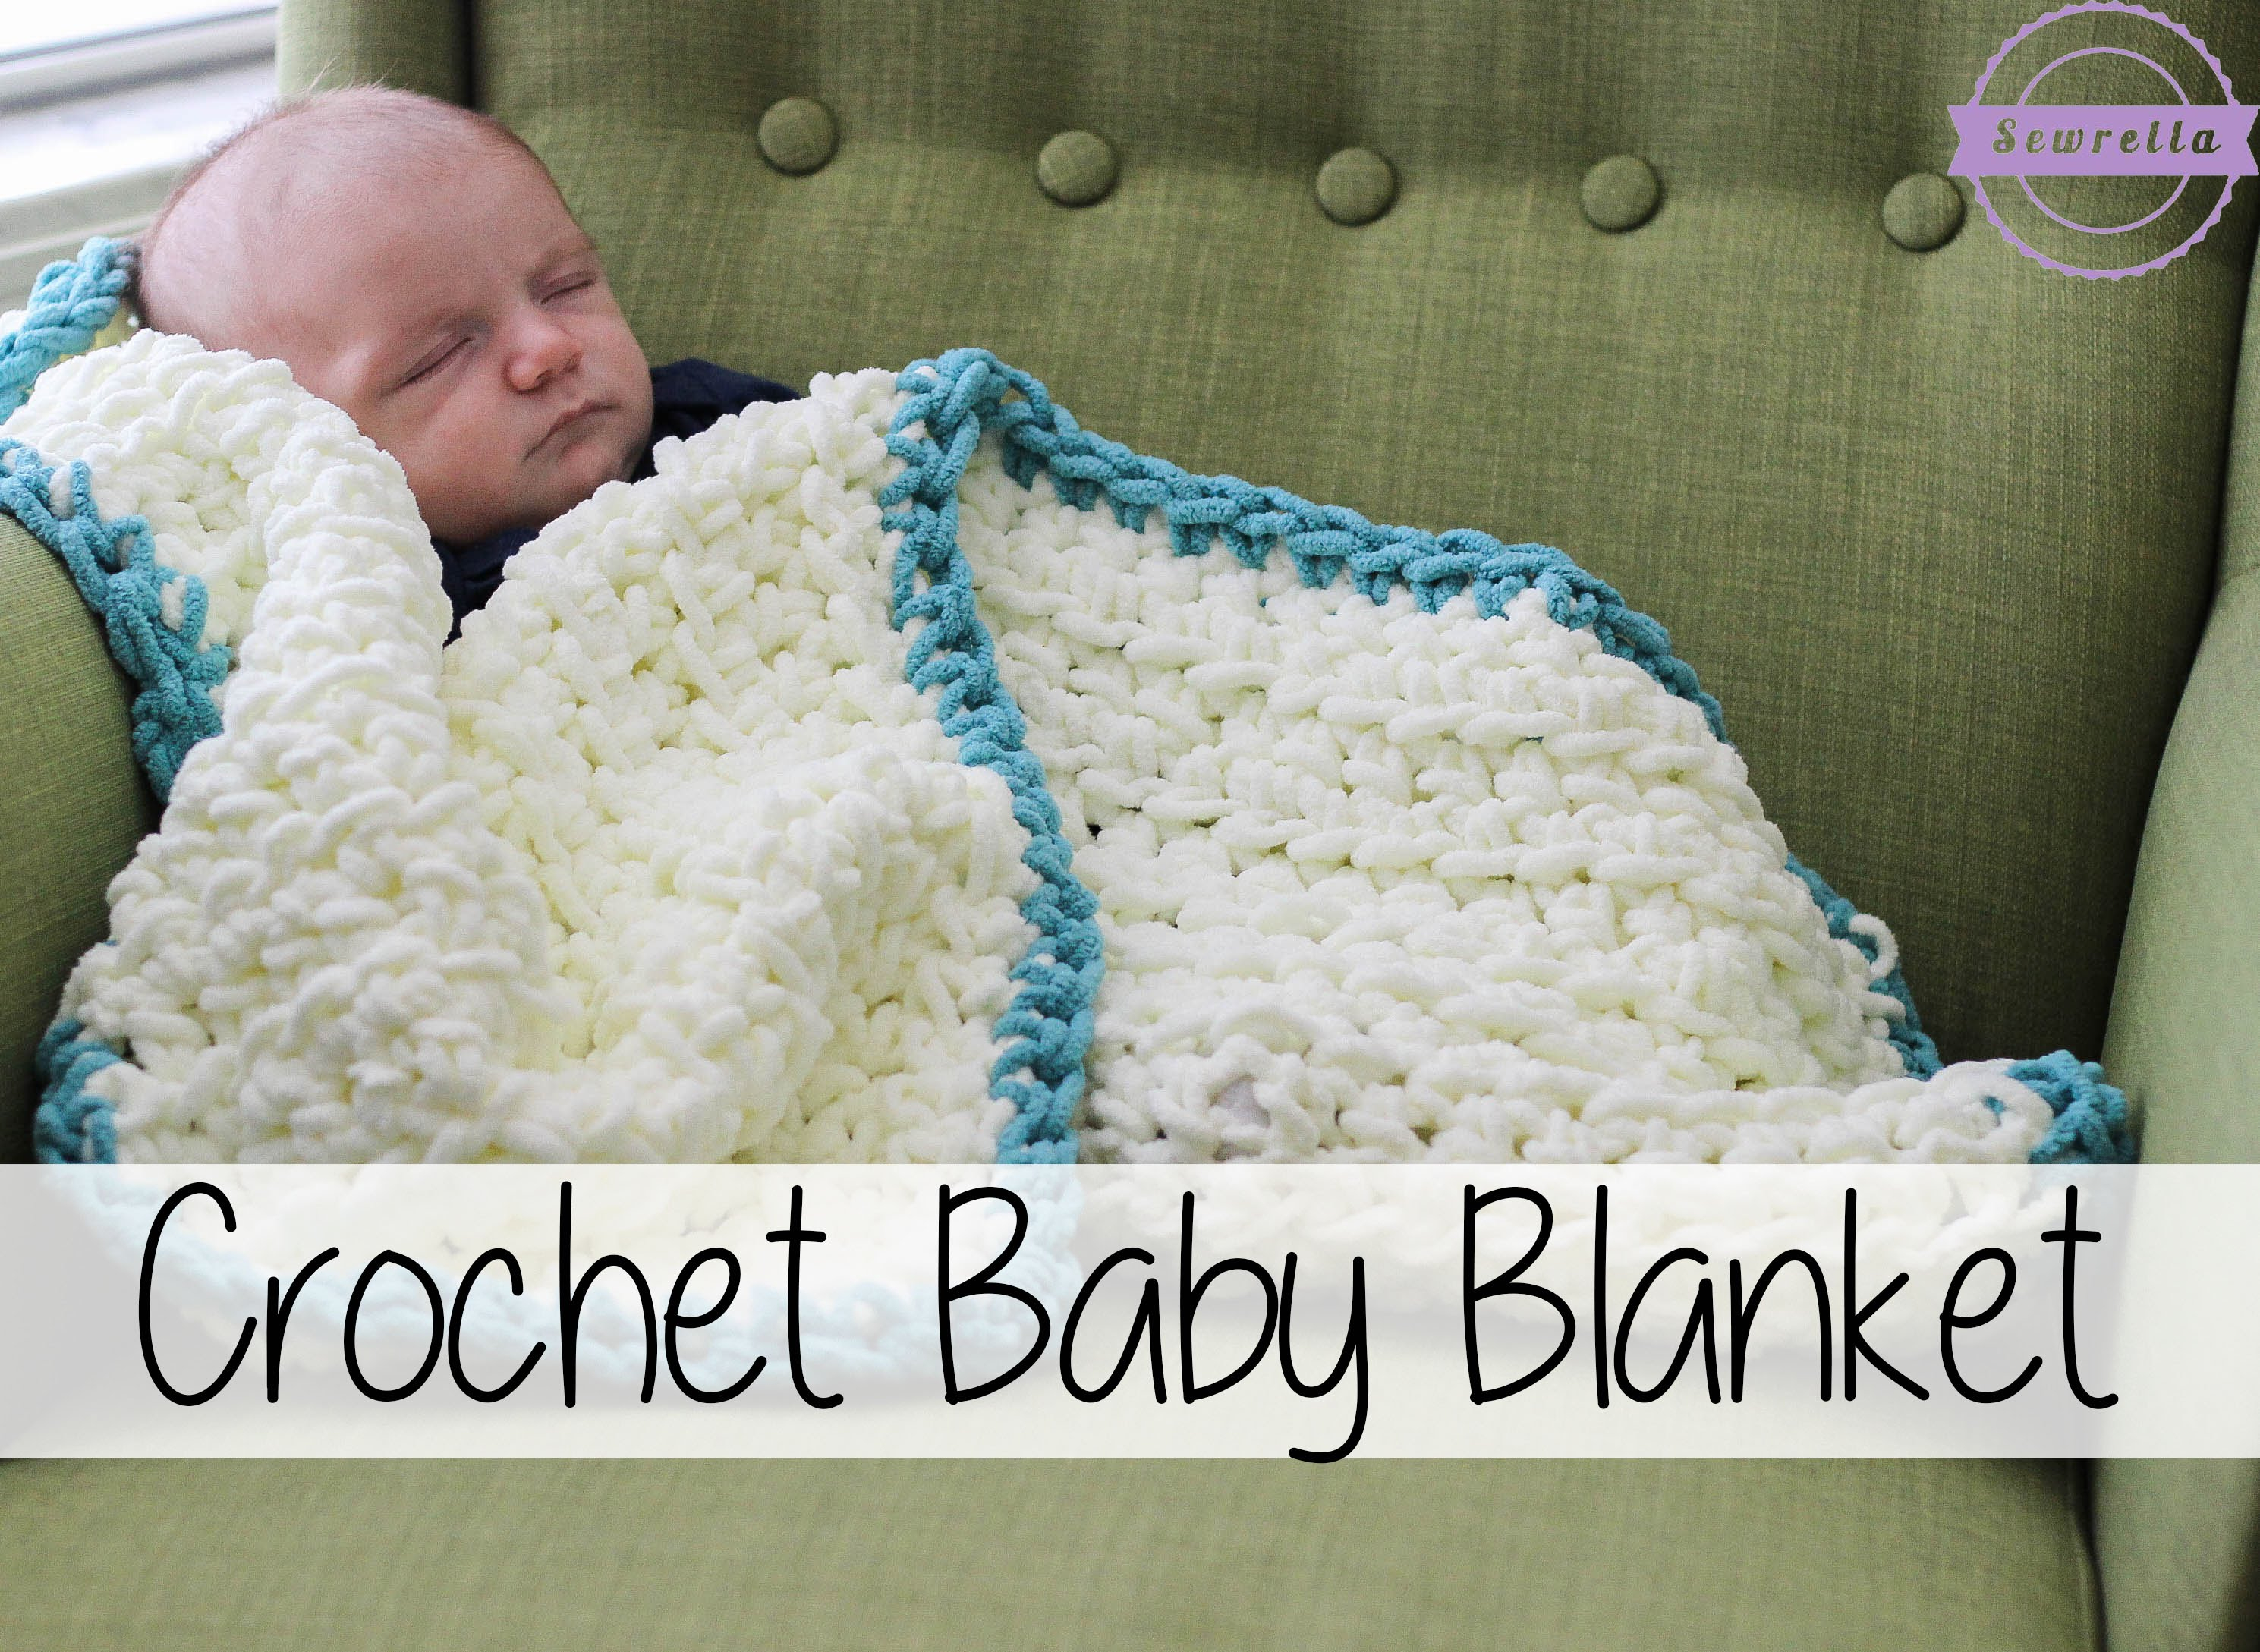 Begginer Crochet Projects Baby Blankets Easy Beginner Crochet Ba Blanket Sewrella Youtube